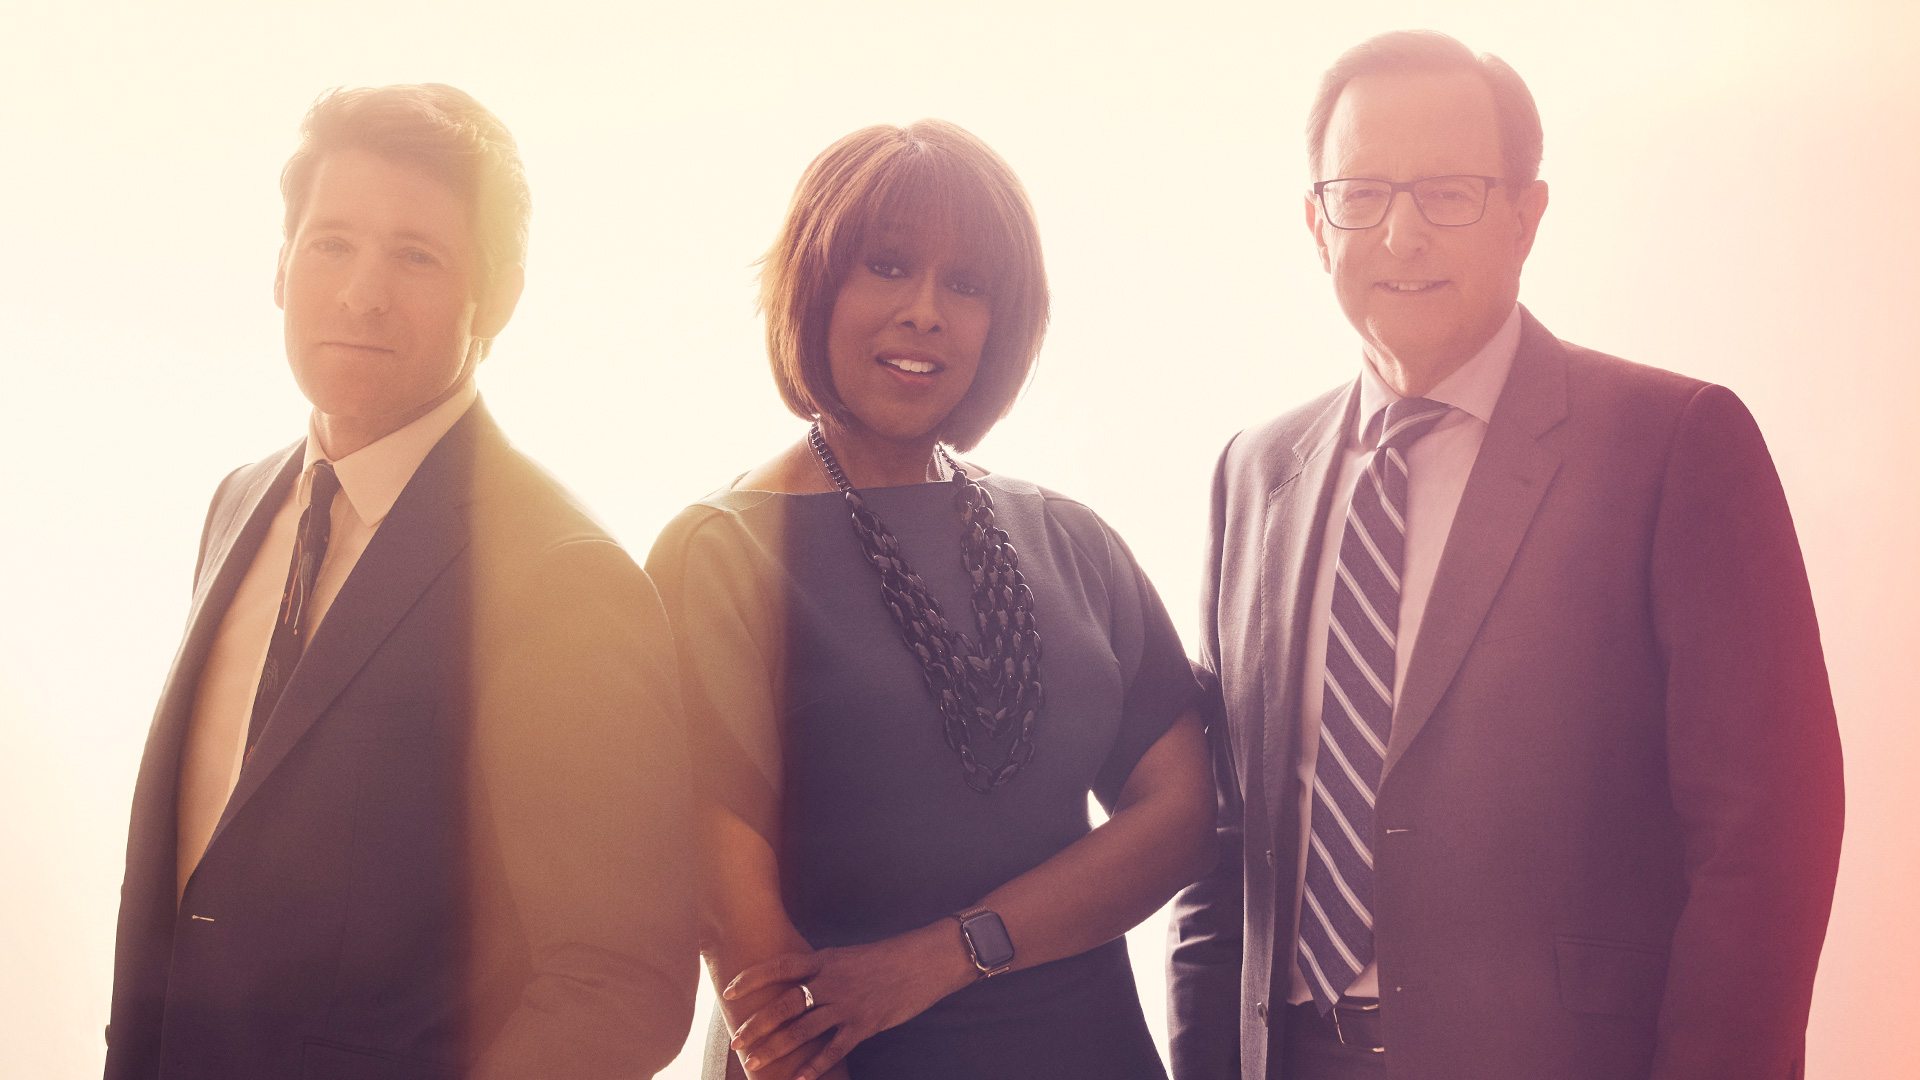 Gayle King, Anthony Mason, and Tony Dokoupil of CBS This Morning have a bright new look